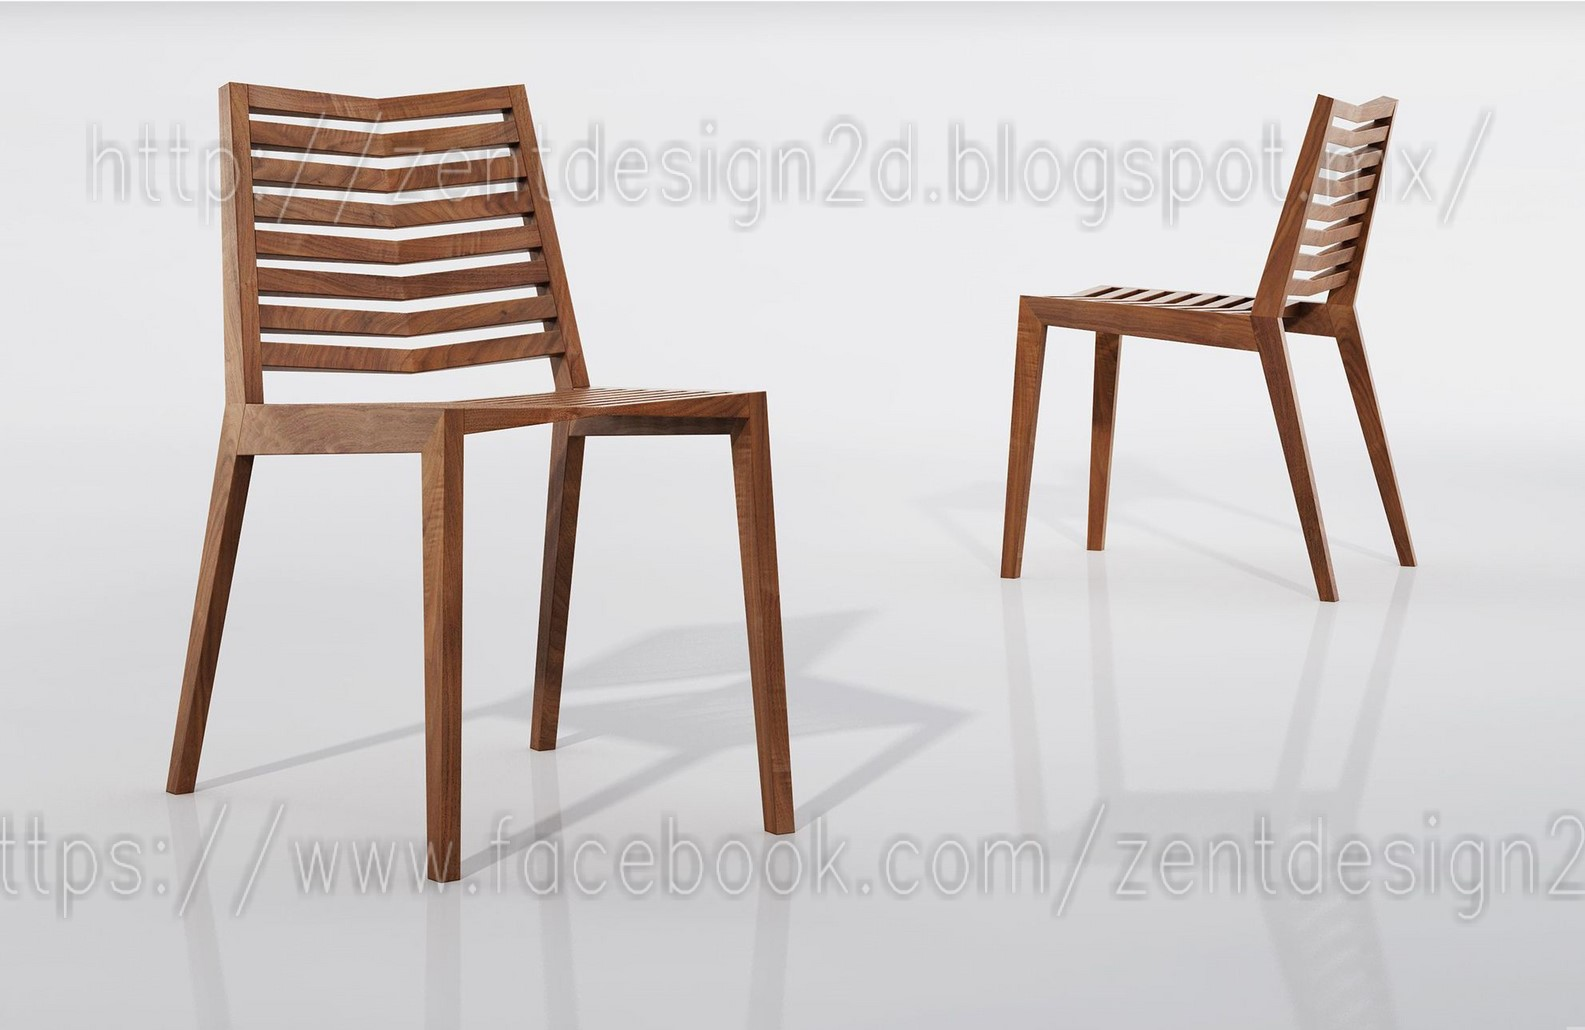 Chair Design Sketchup Medieval Dining Chairs Viz 1 Zent 2d